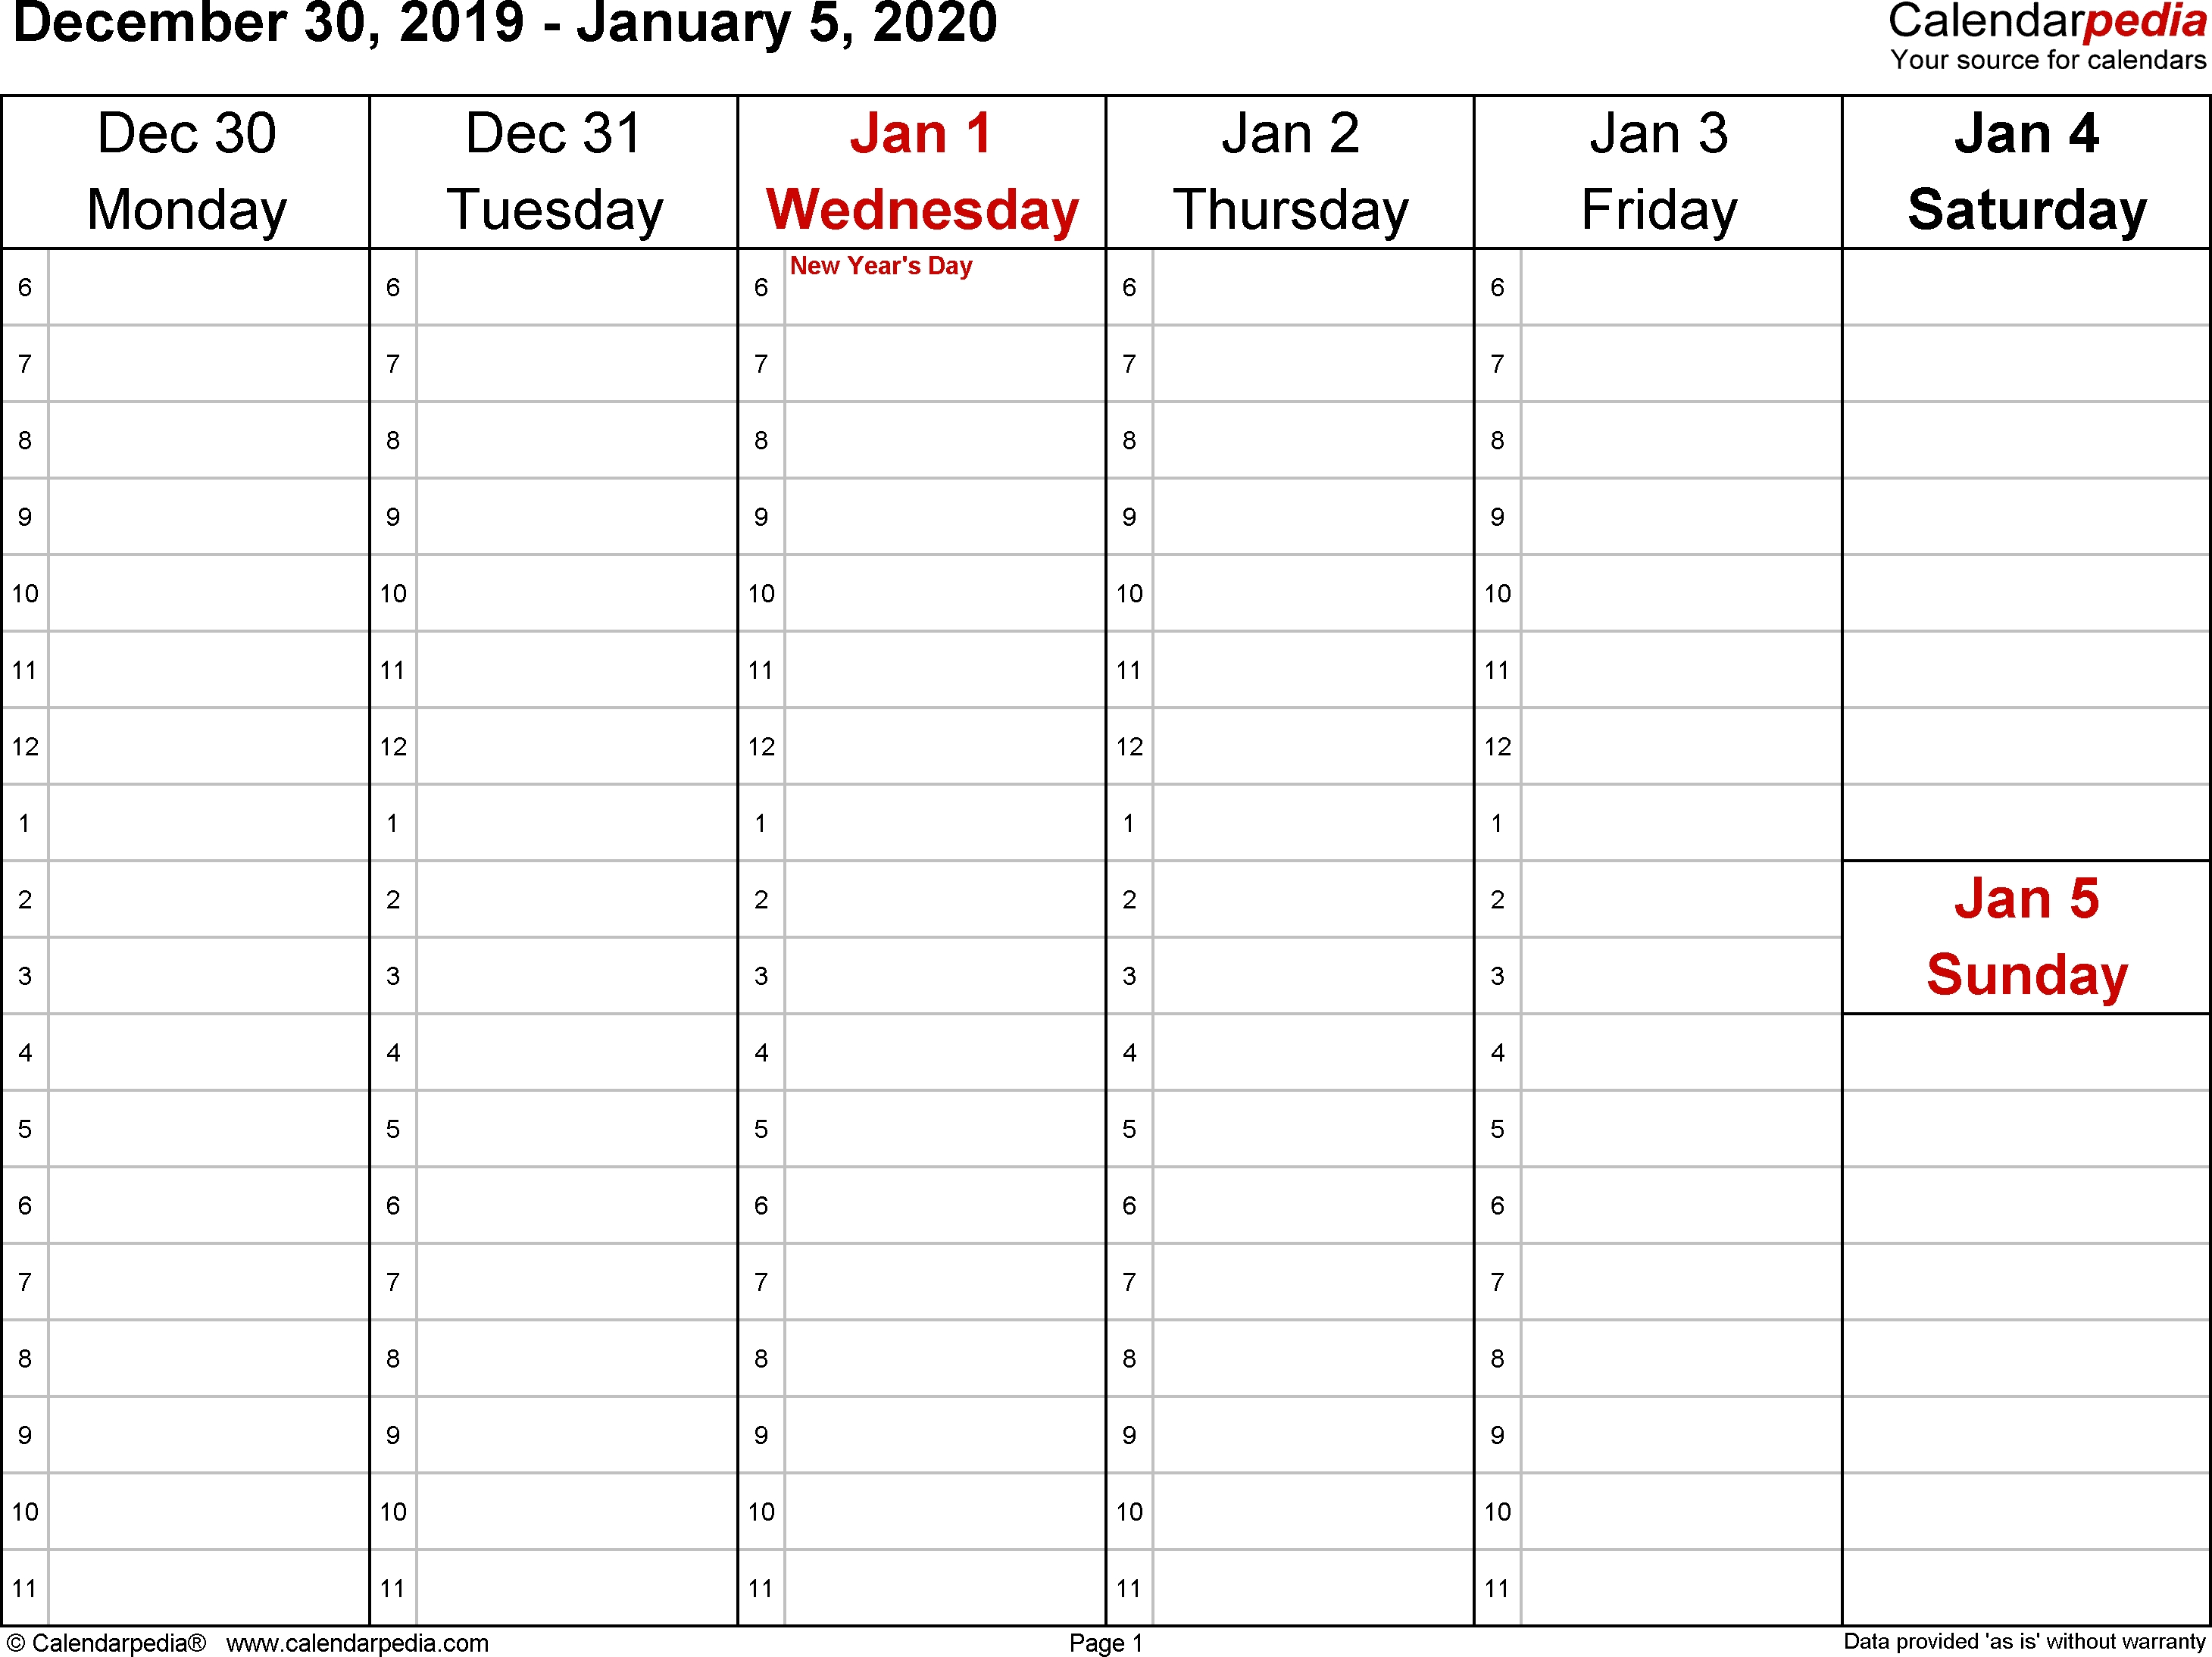 Weekly Calendar 2020 For Word - 12 Free Printable Templates intended for Calendar 2020 Printable Calendar Starting With Monday